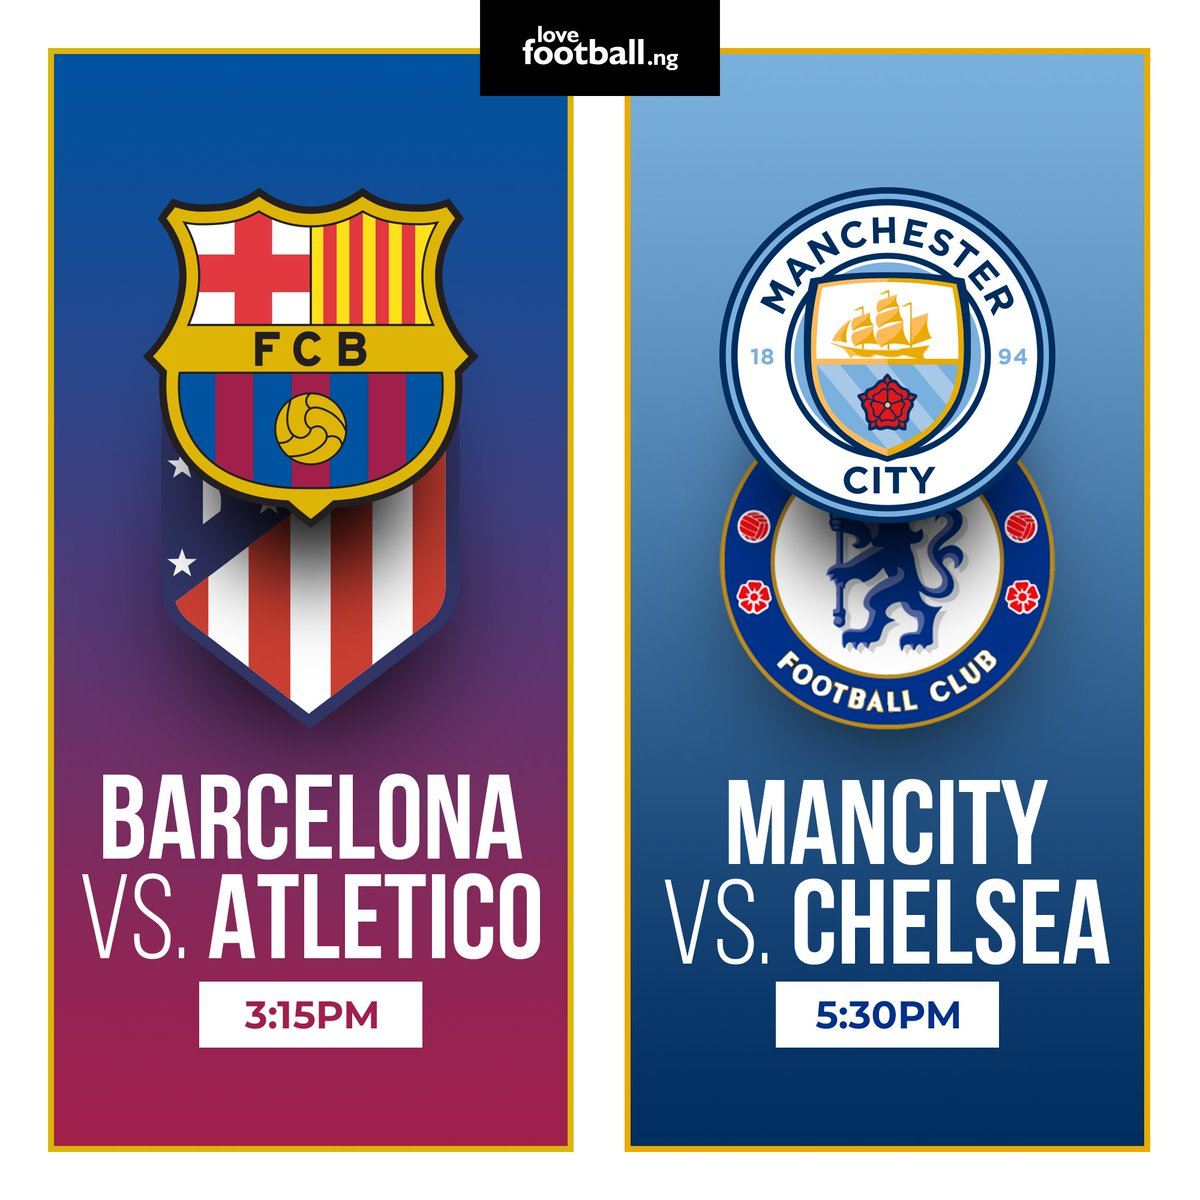 Barca host leaders ATM on a pivotal weekend in the La Liga title race.  In a dress rehearsal for the #UCL final, Man City host Chelsea in today's PL showdown.   Win up to N15,000 in these exciting contests:  Fee: N500 Link:https://t.co/IySebD4OJc  Link:https://t.co/ykP3breLBe https://t.co/AgnniNfpov